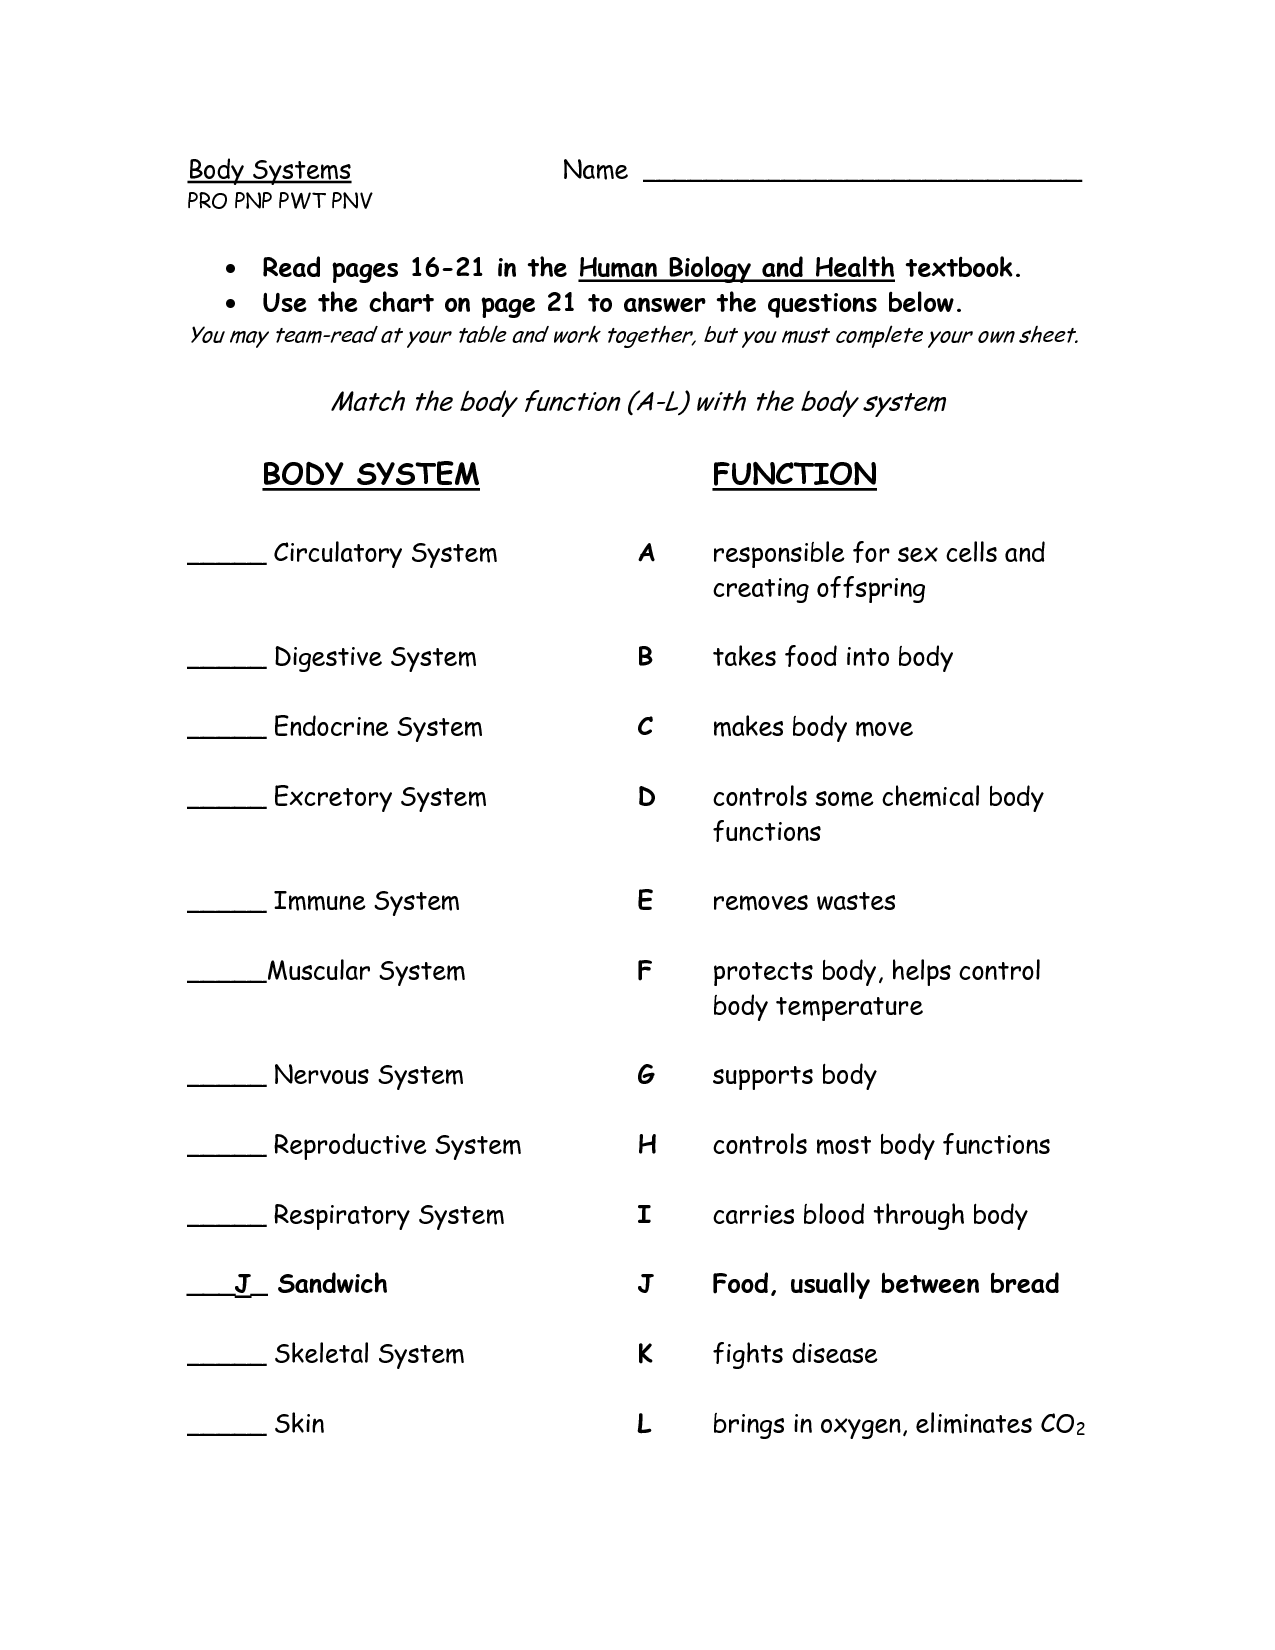 Body Systems And Functions Worksheets Instructional